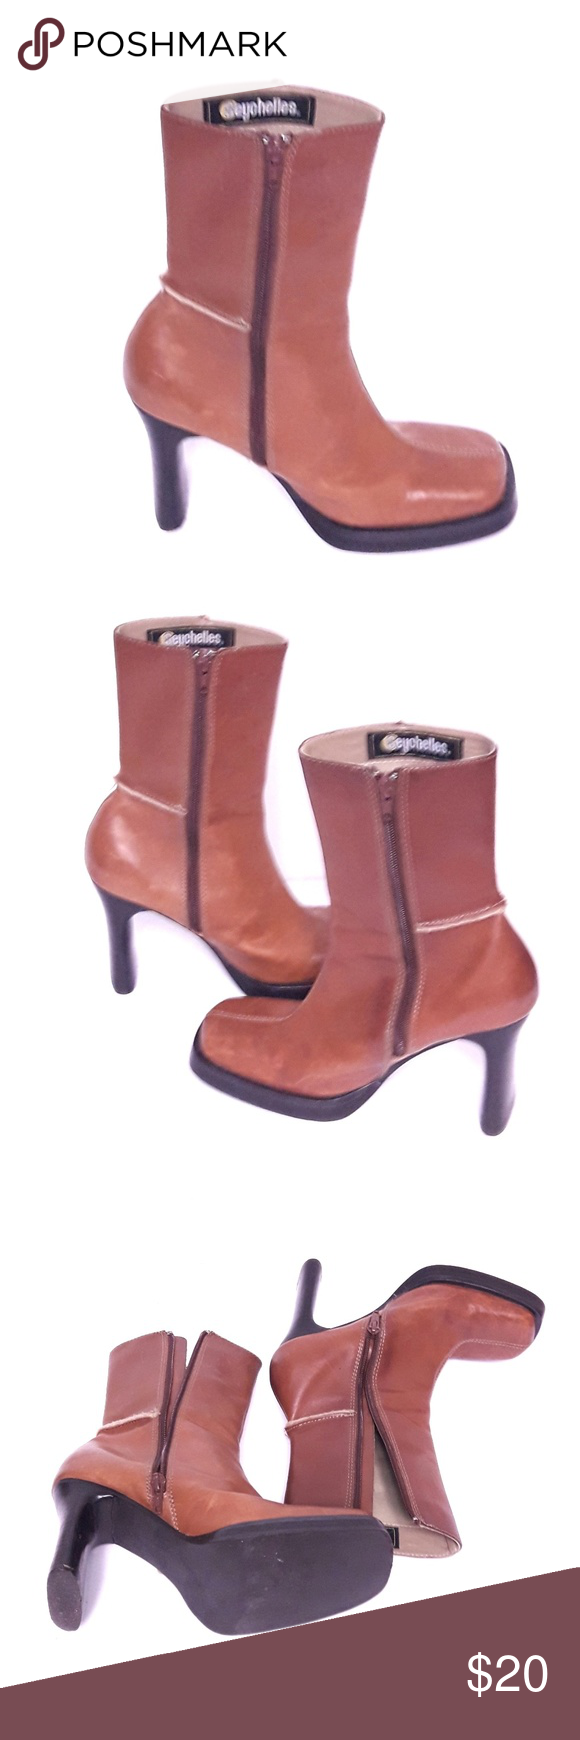 bd129147afd78b Seychelles boots In pre-owned condition Seychelles boots. Both heels have a  small chip